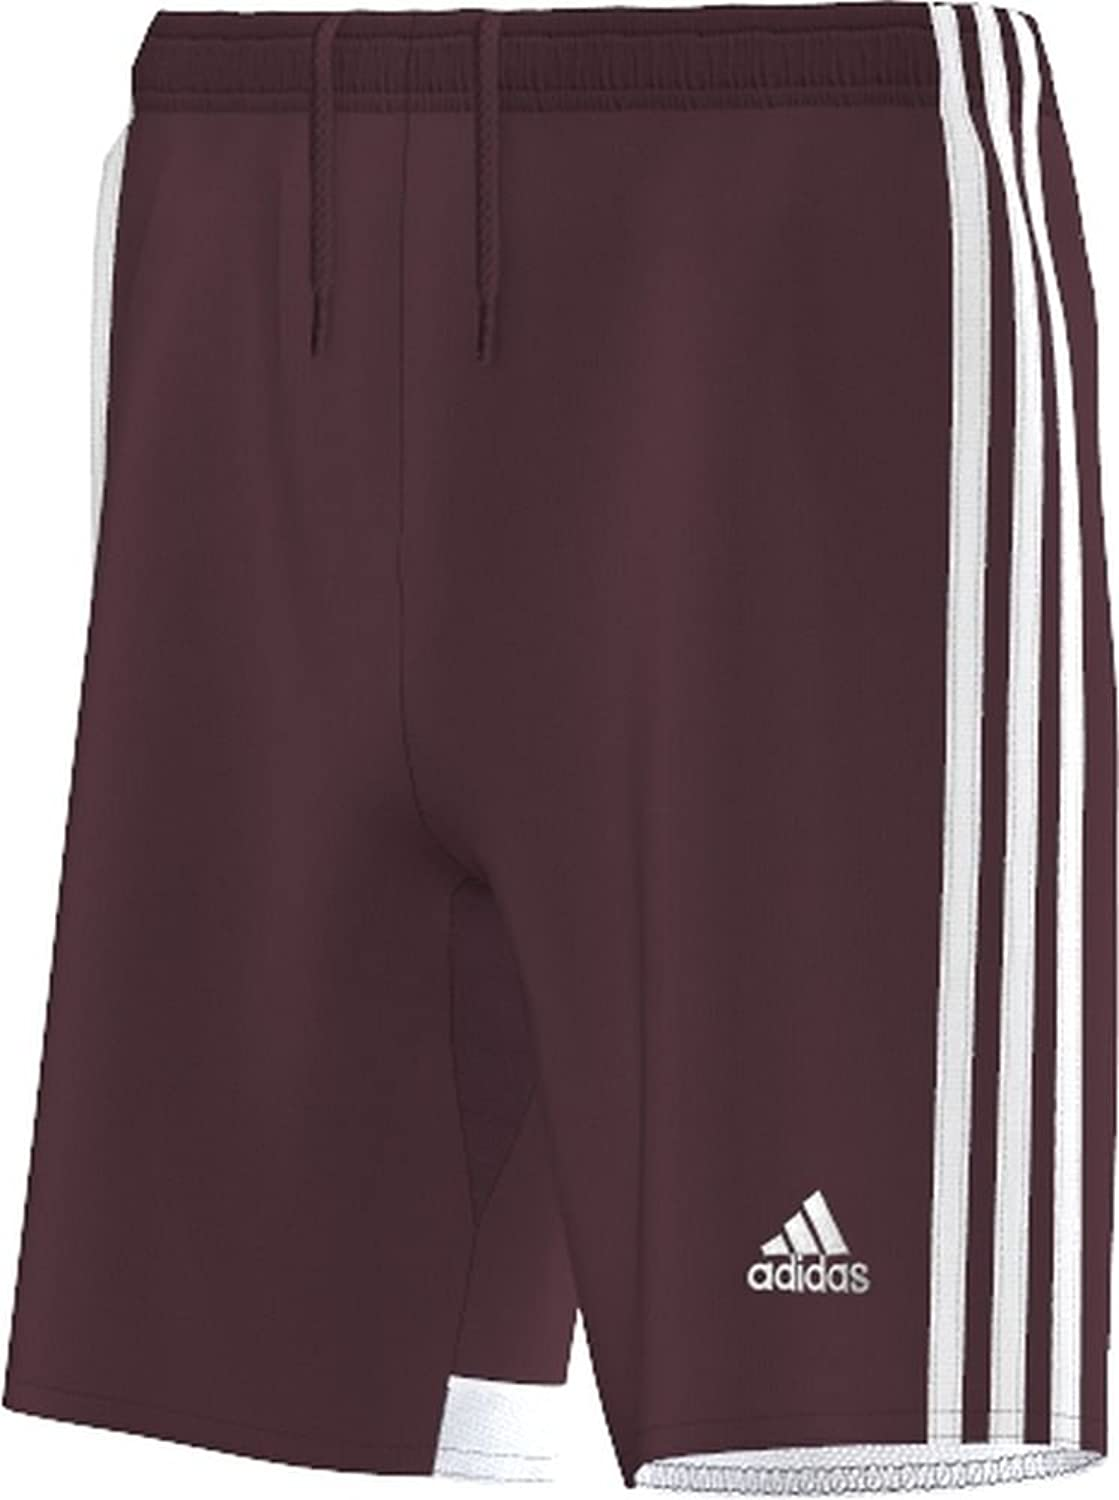 Adidas Youth ClimaCool Regista 14 Short B00J2H8ZWWLight Maroon-White YM